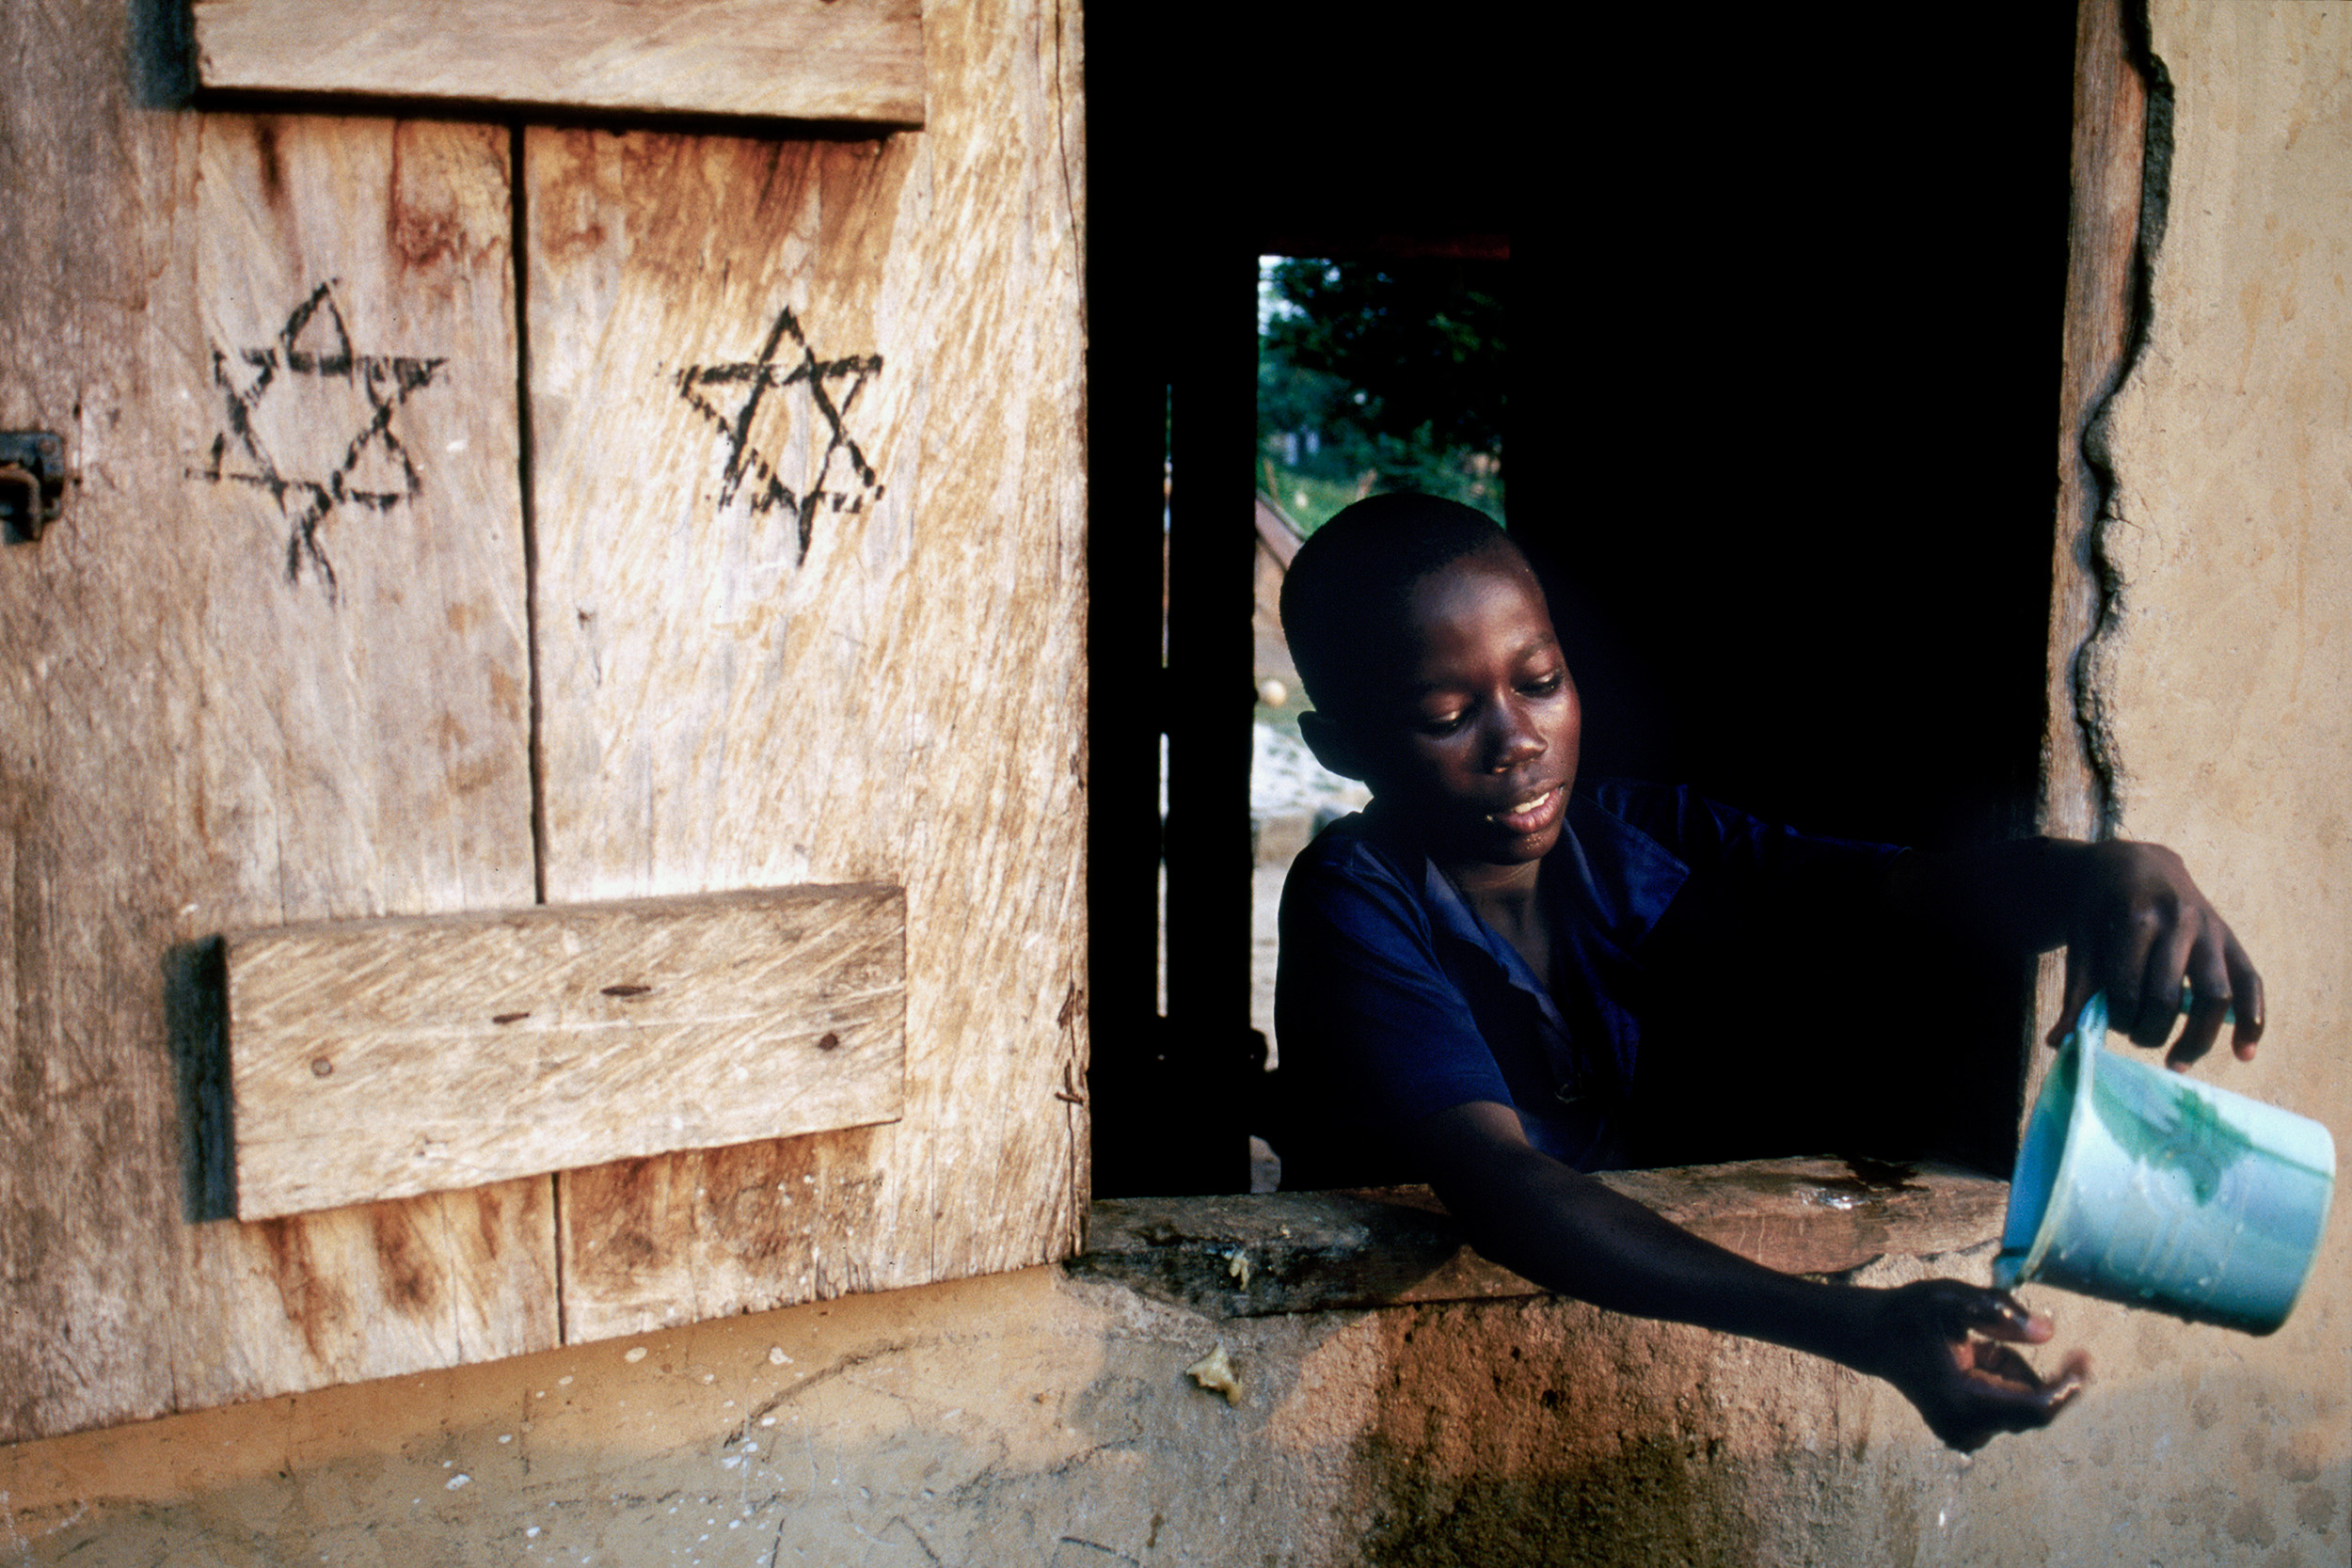 After helping to prepare the Shabbat meal, Kwame Armah leans out the window of his family's kitchen and cleans his hands before nightfall. Children comprise many of the hundred or so members of Ghana's House of Israel community. Unlike their parents, most of whom chose Judaism as their religion while they were adults, the children of the community have grown up with Shabbat, nightly meetings to learn about Judaism, and a strong connection with the Jewish people.